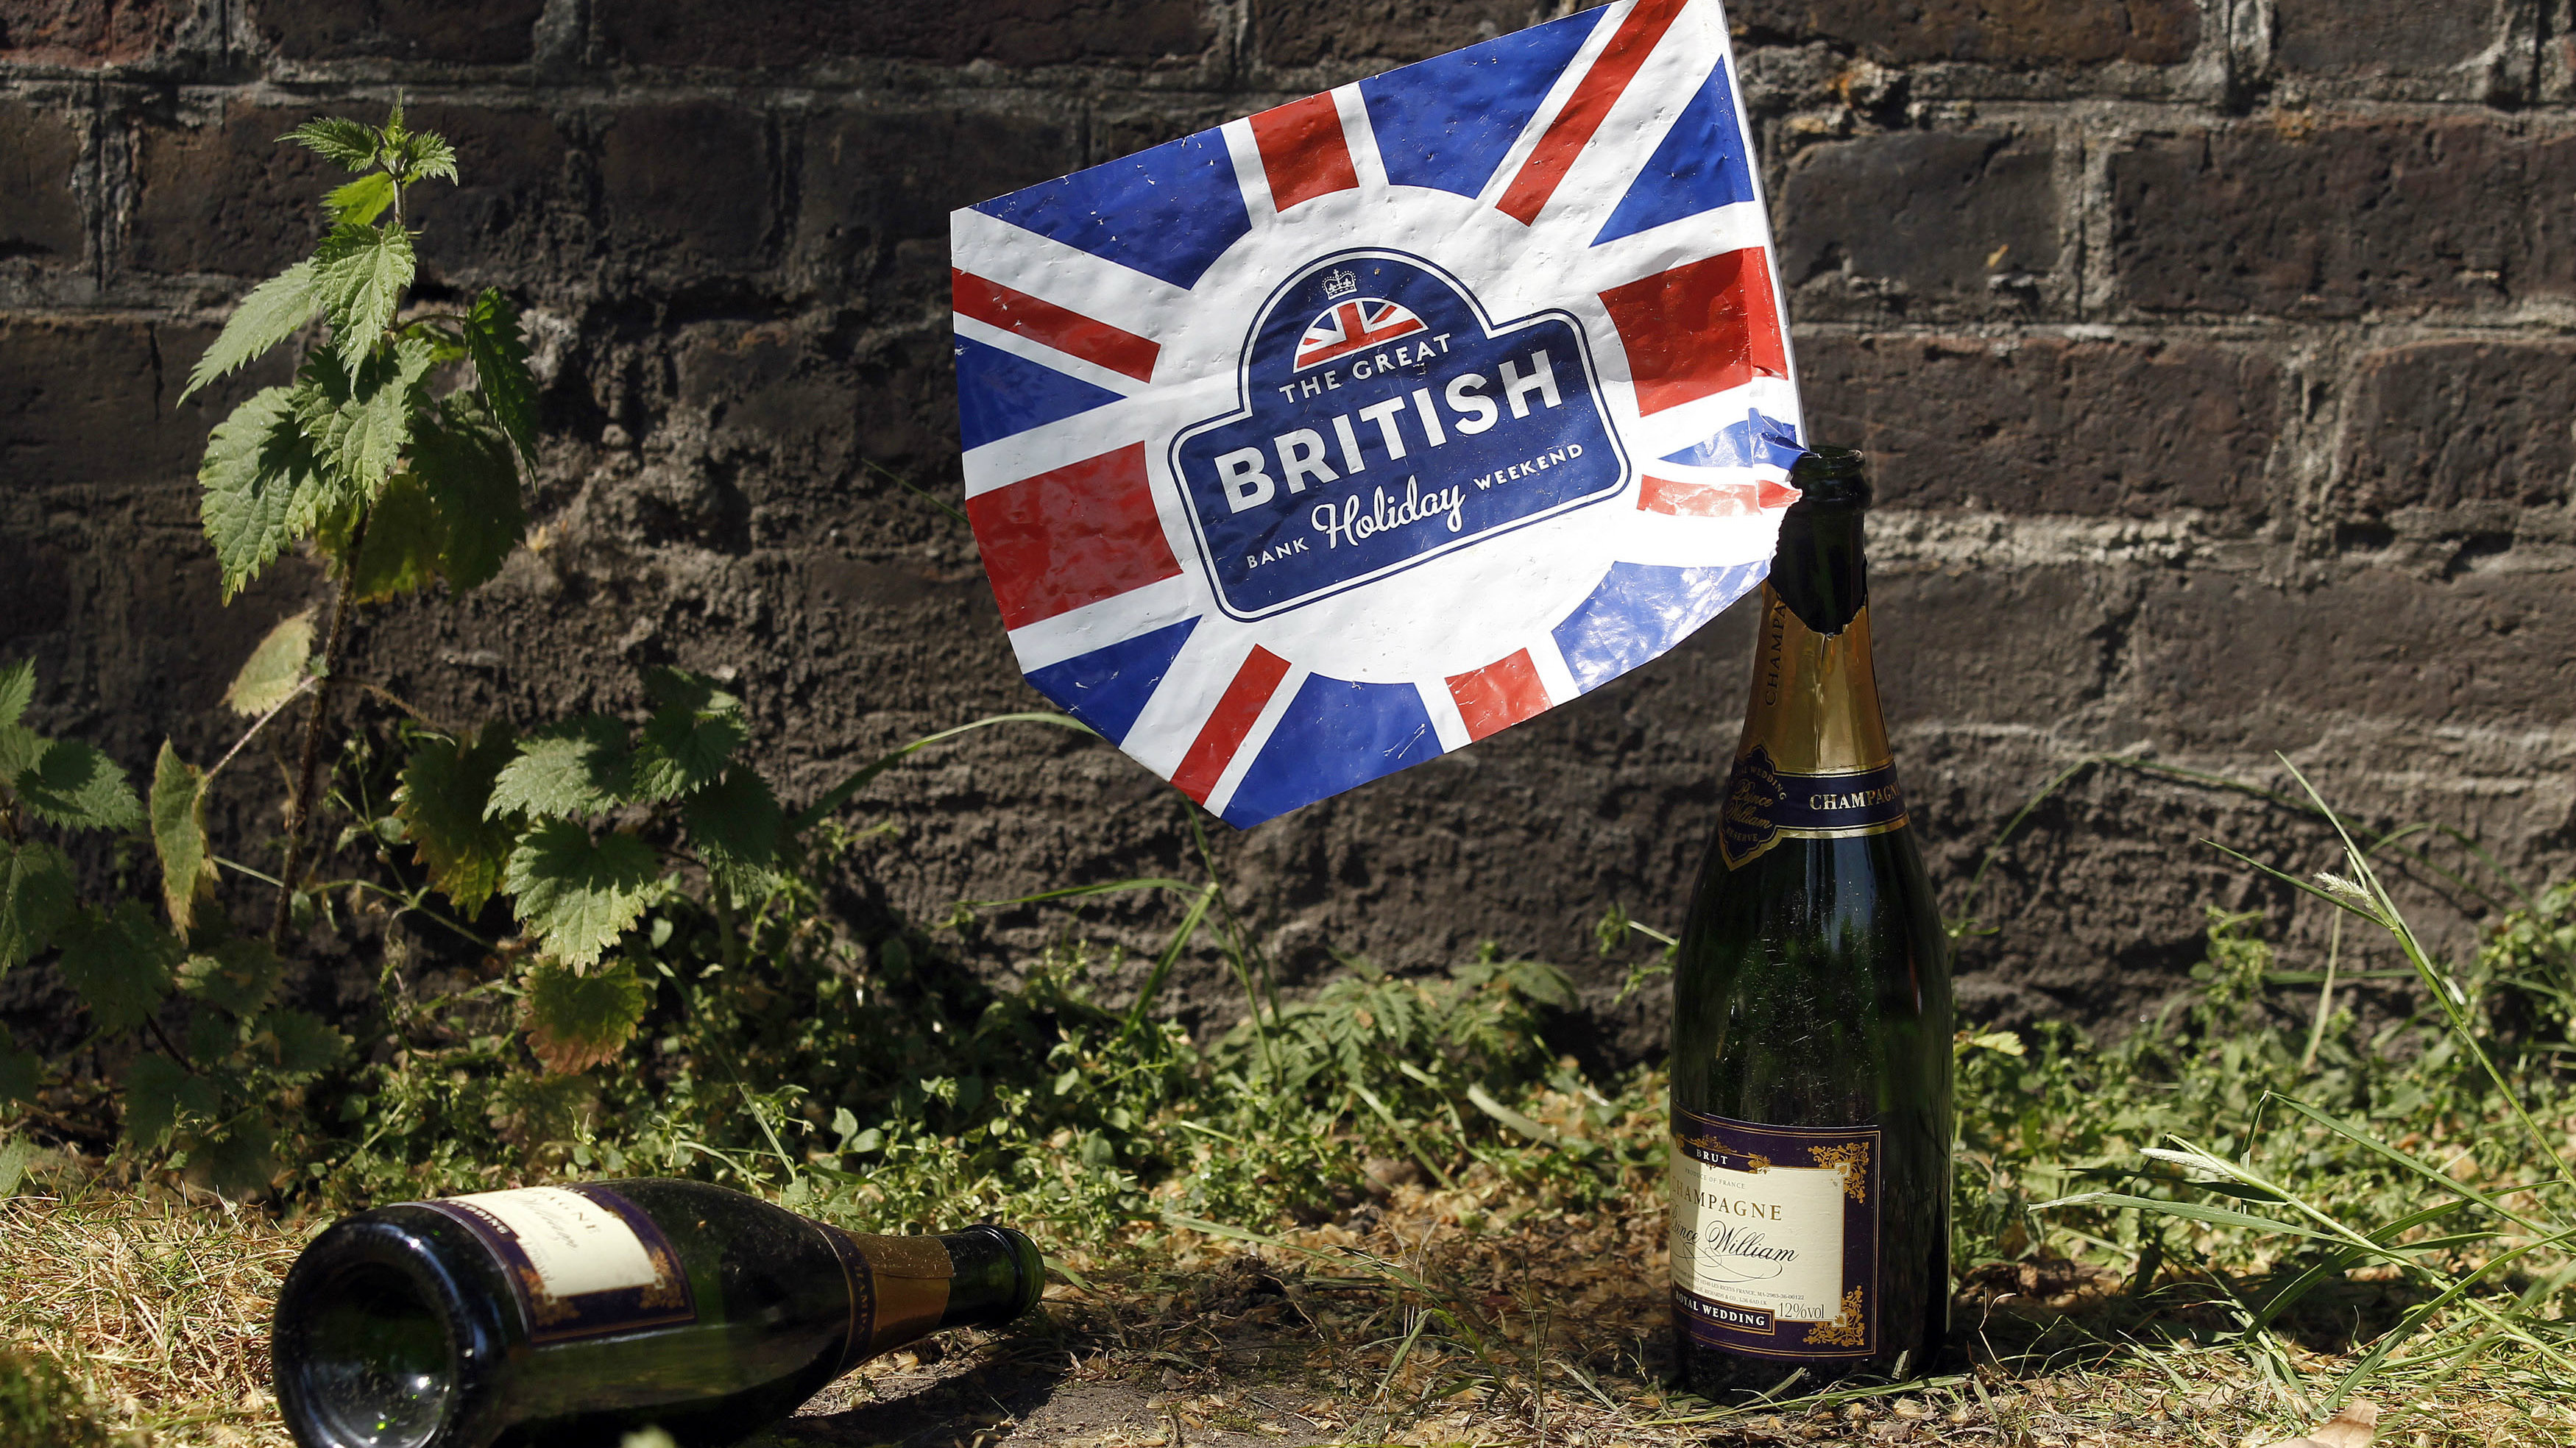 Champagne bottles by a union Jack flag